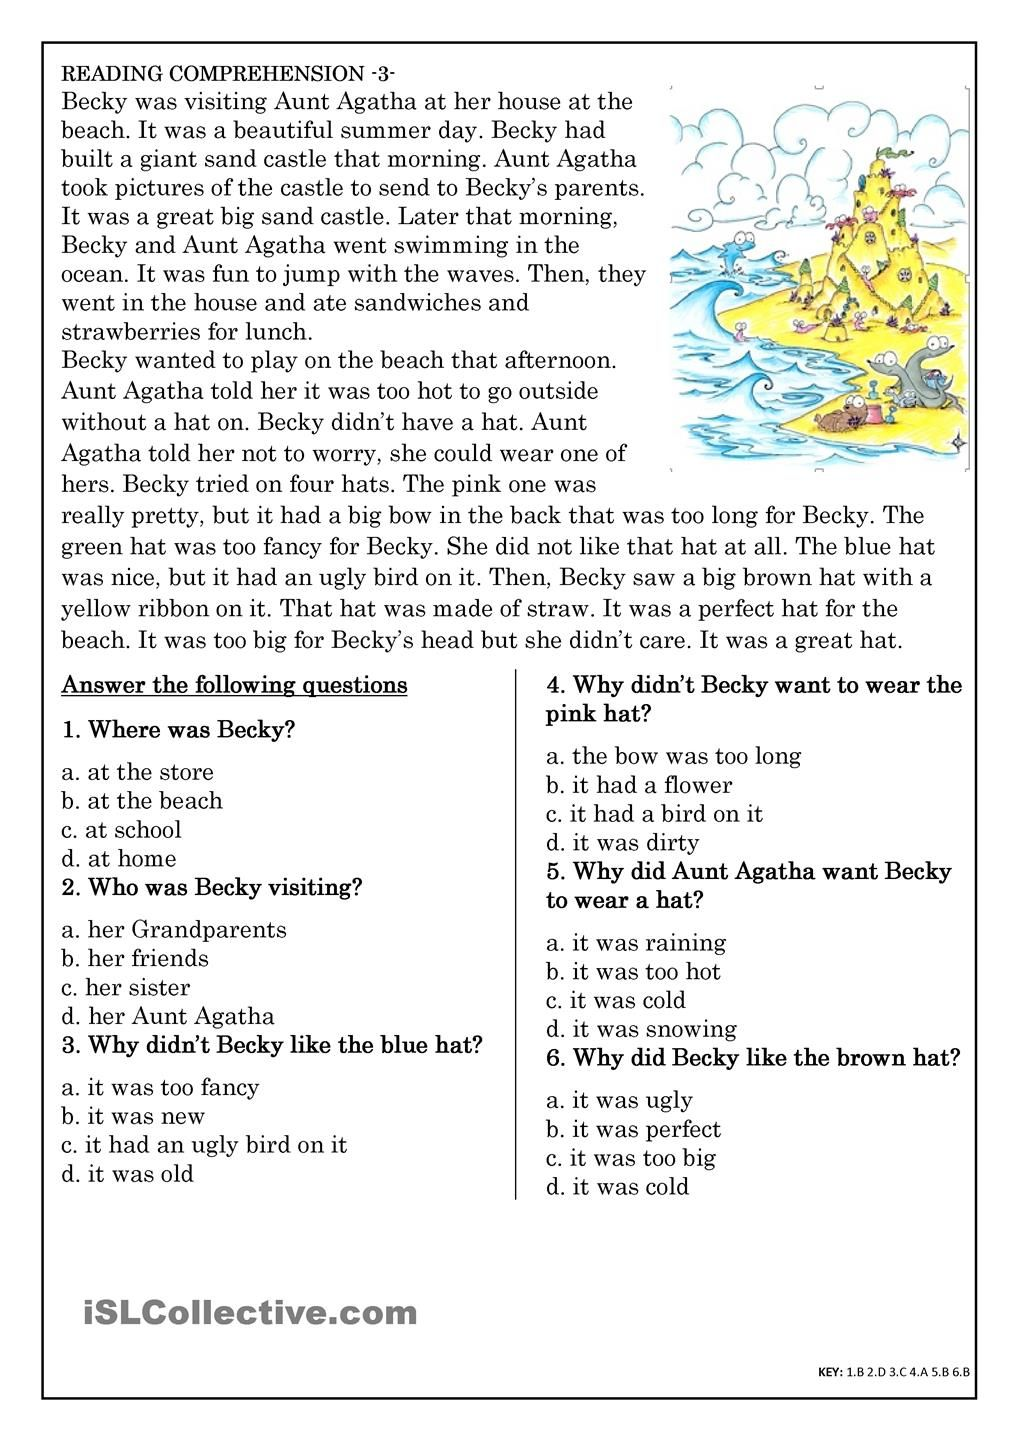 Worksheets Free Reading Comprehension Worksheets For 3rd Grade english reading and comprehension worksheets google school